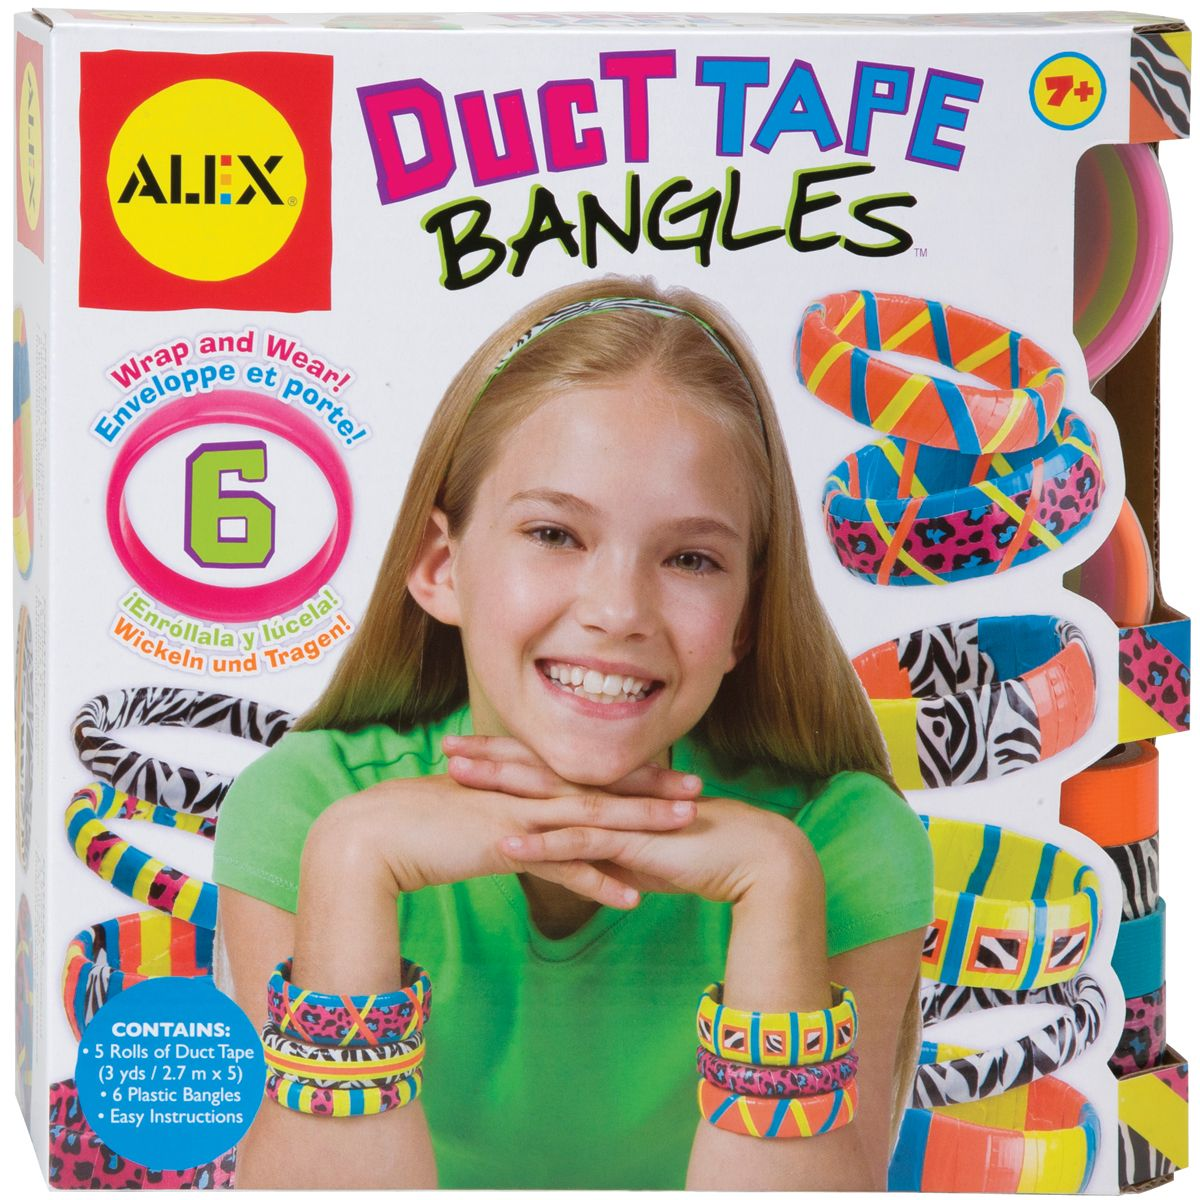 Duct tape crafts kits - Alex Toys Friends 4 Ever Kit By Alex Toys Duct Tape Craftsalex